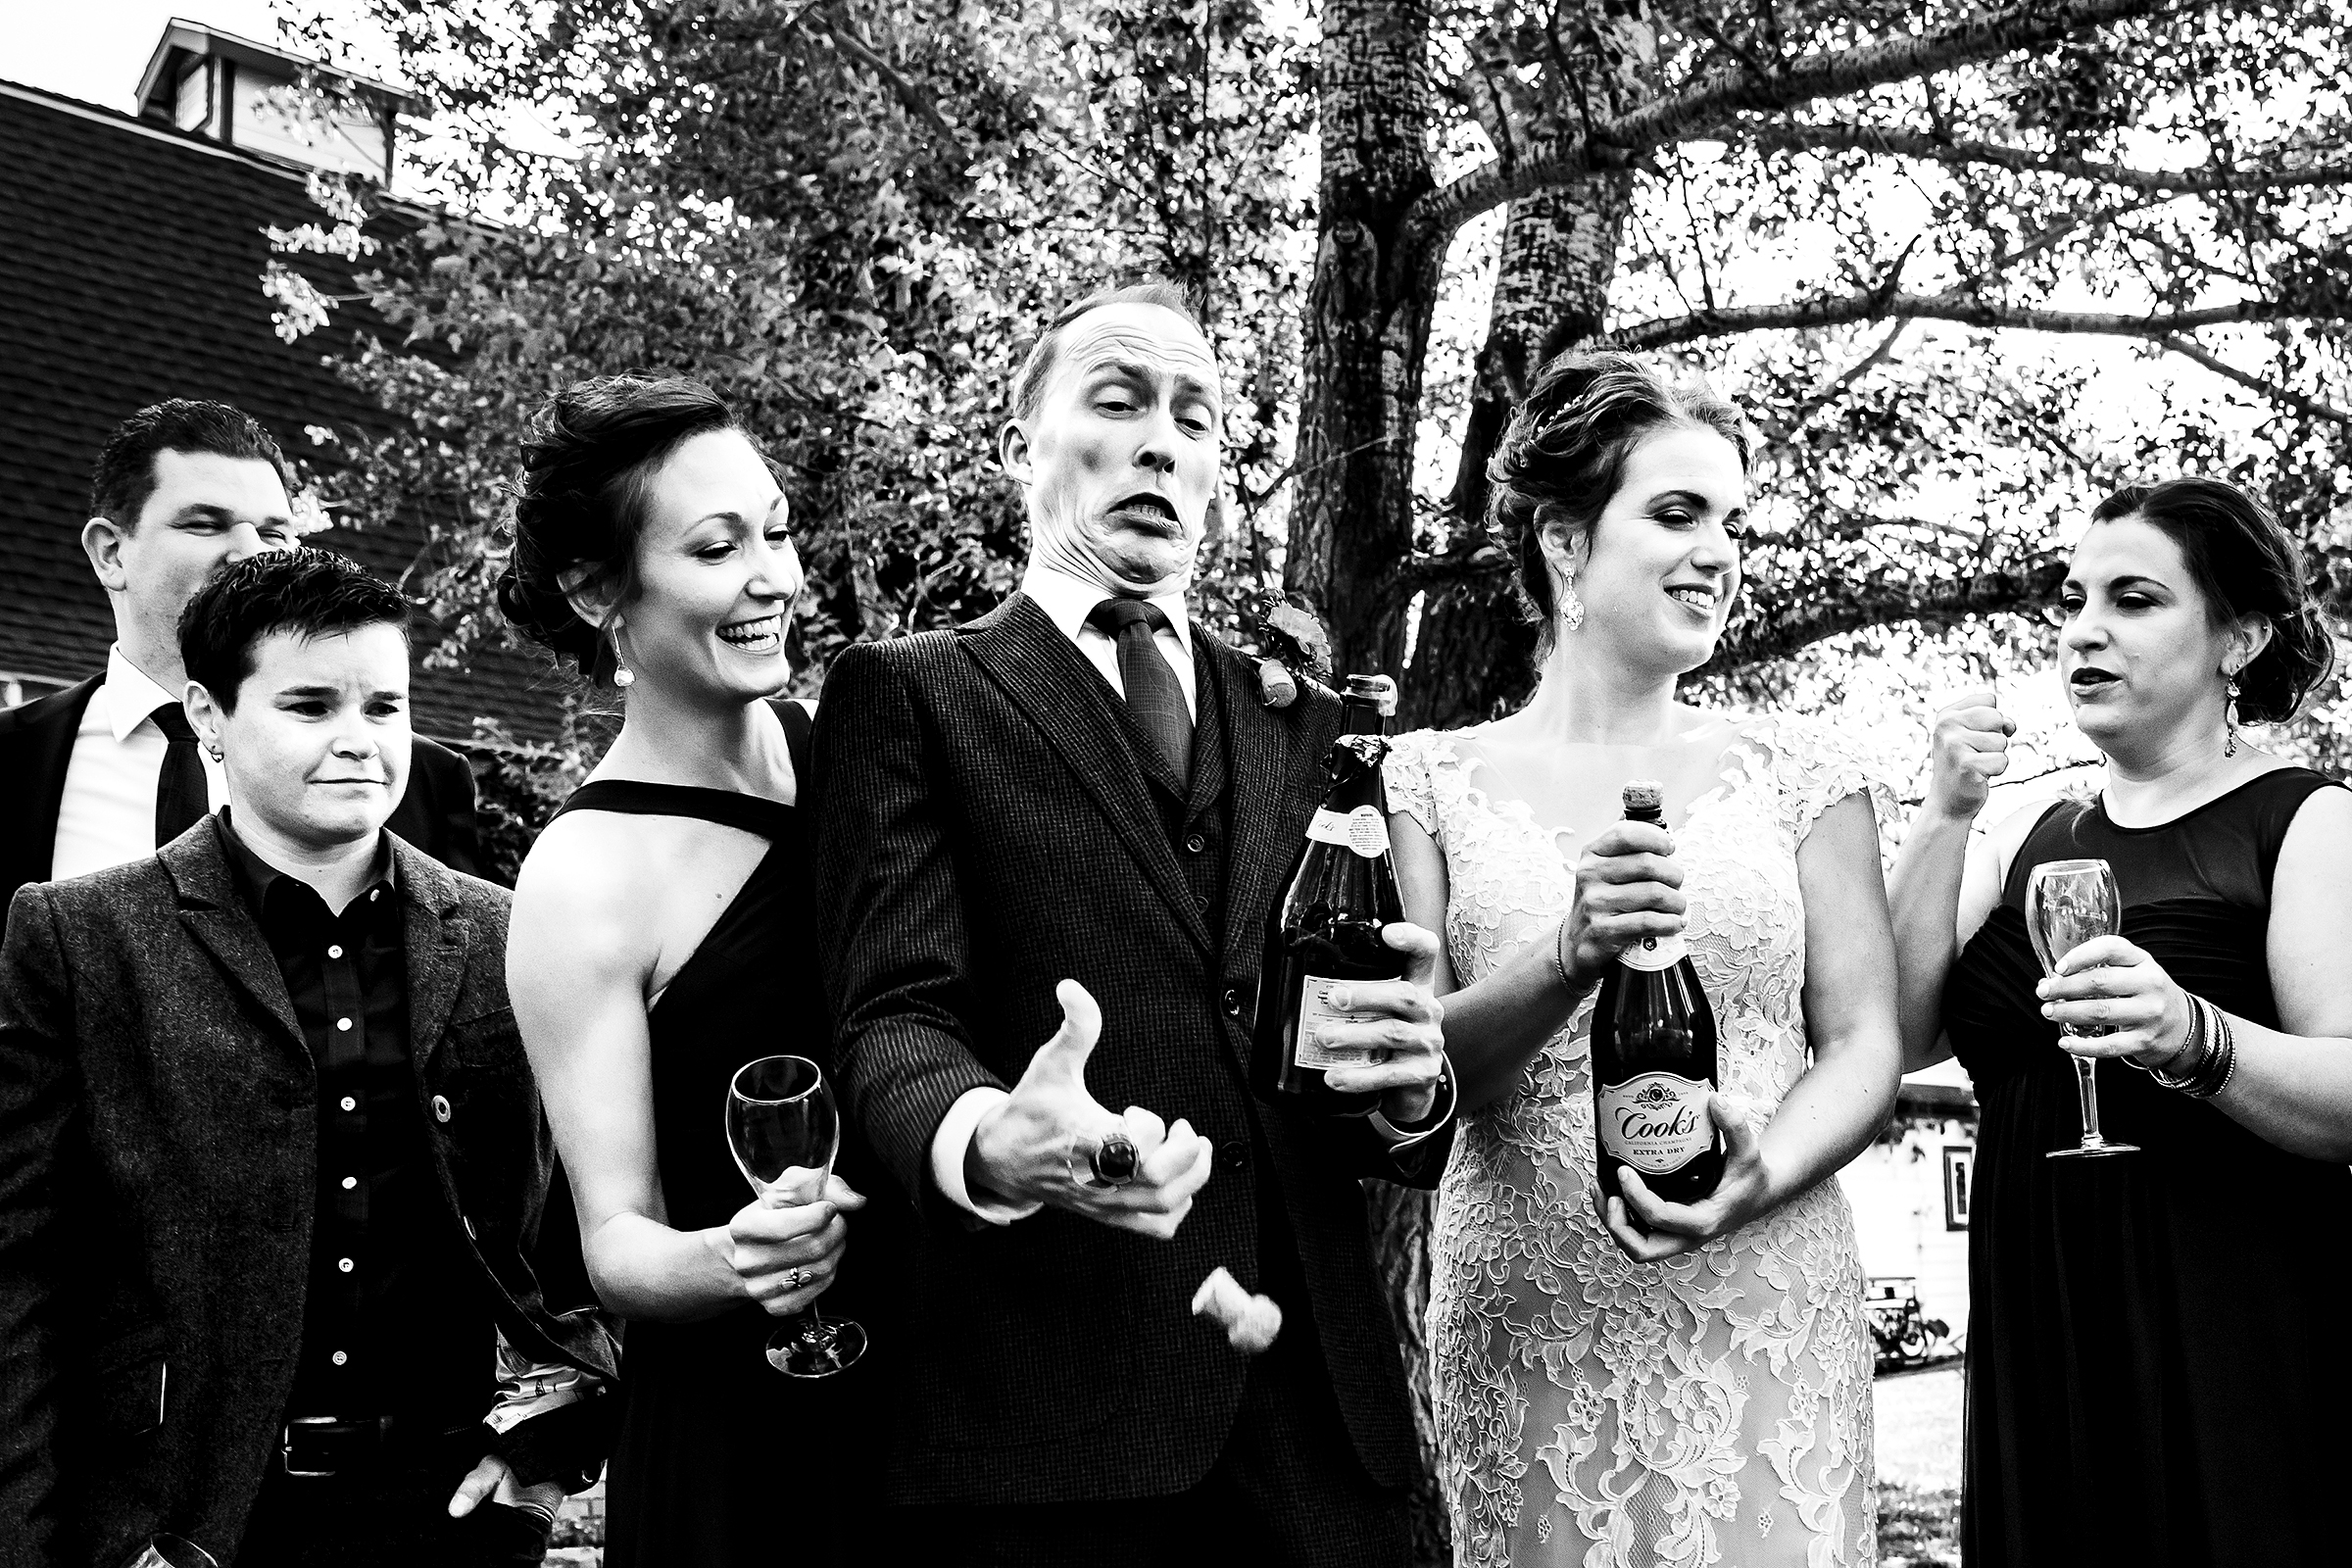 Opening up the bubbly - photo by J La Plante Photo